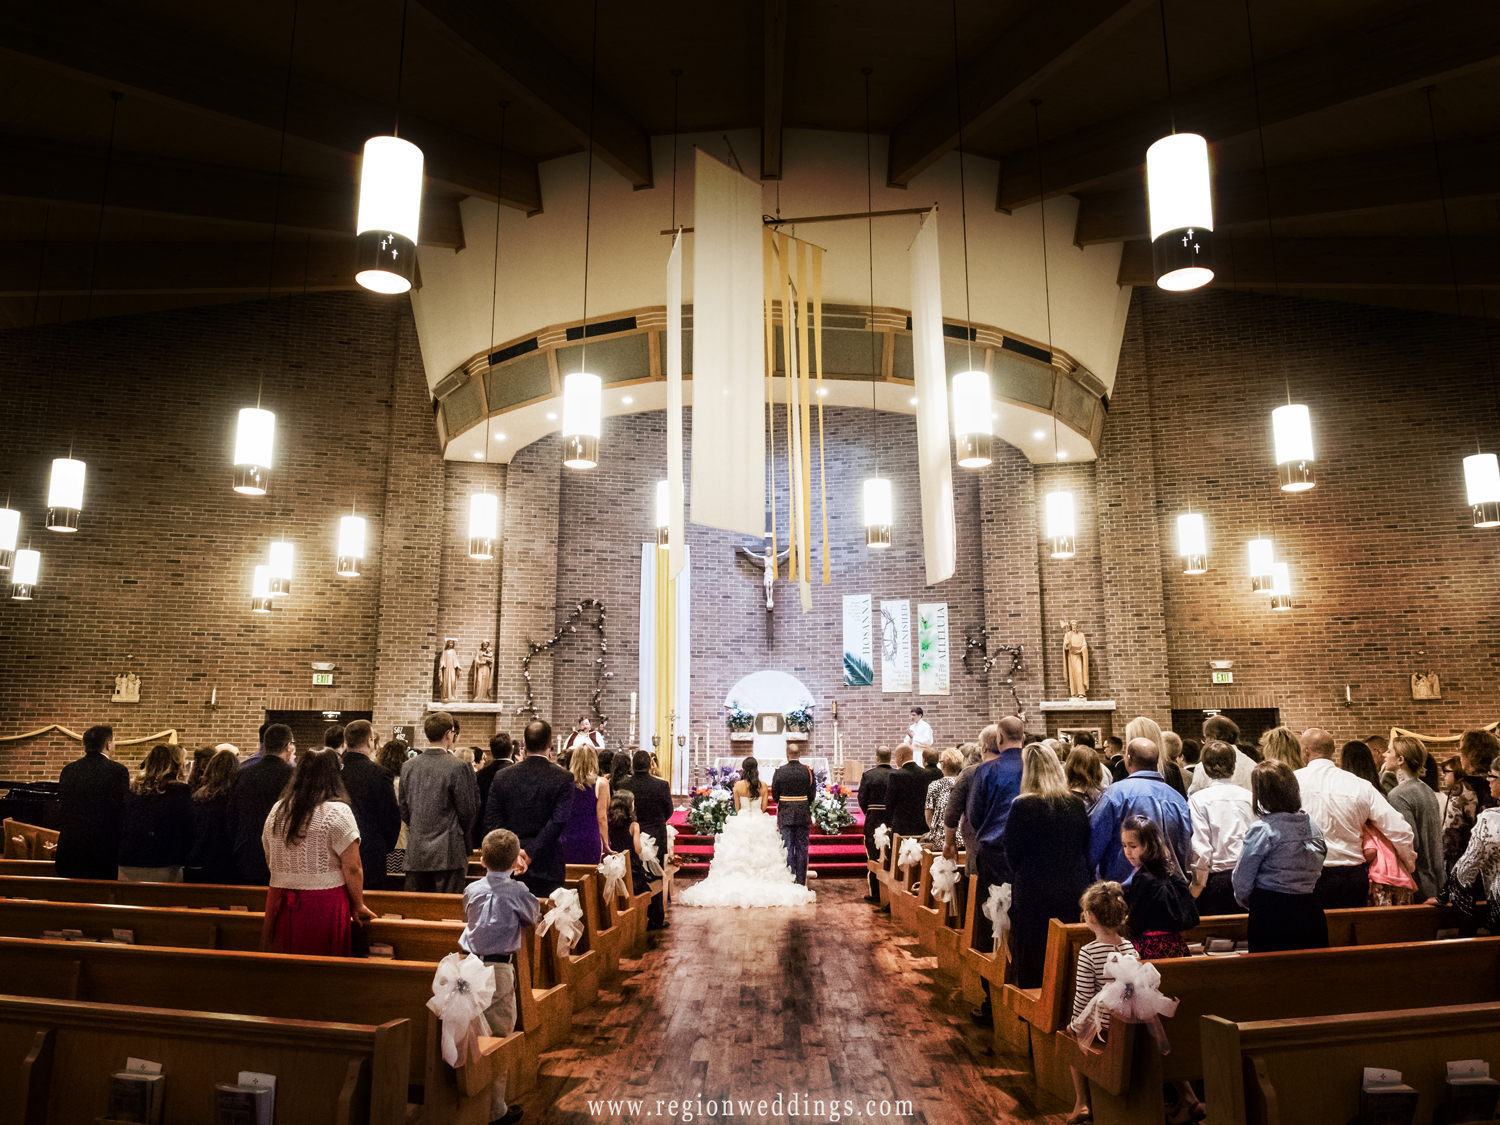 The view from the back of Saint Matthias Church during a Spring wedding ceremony.